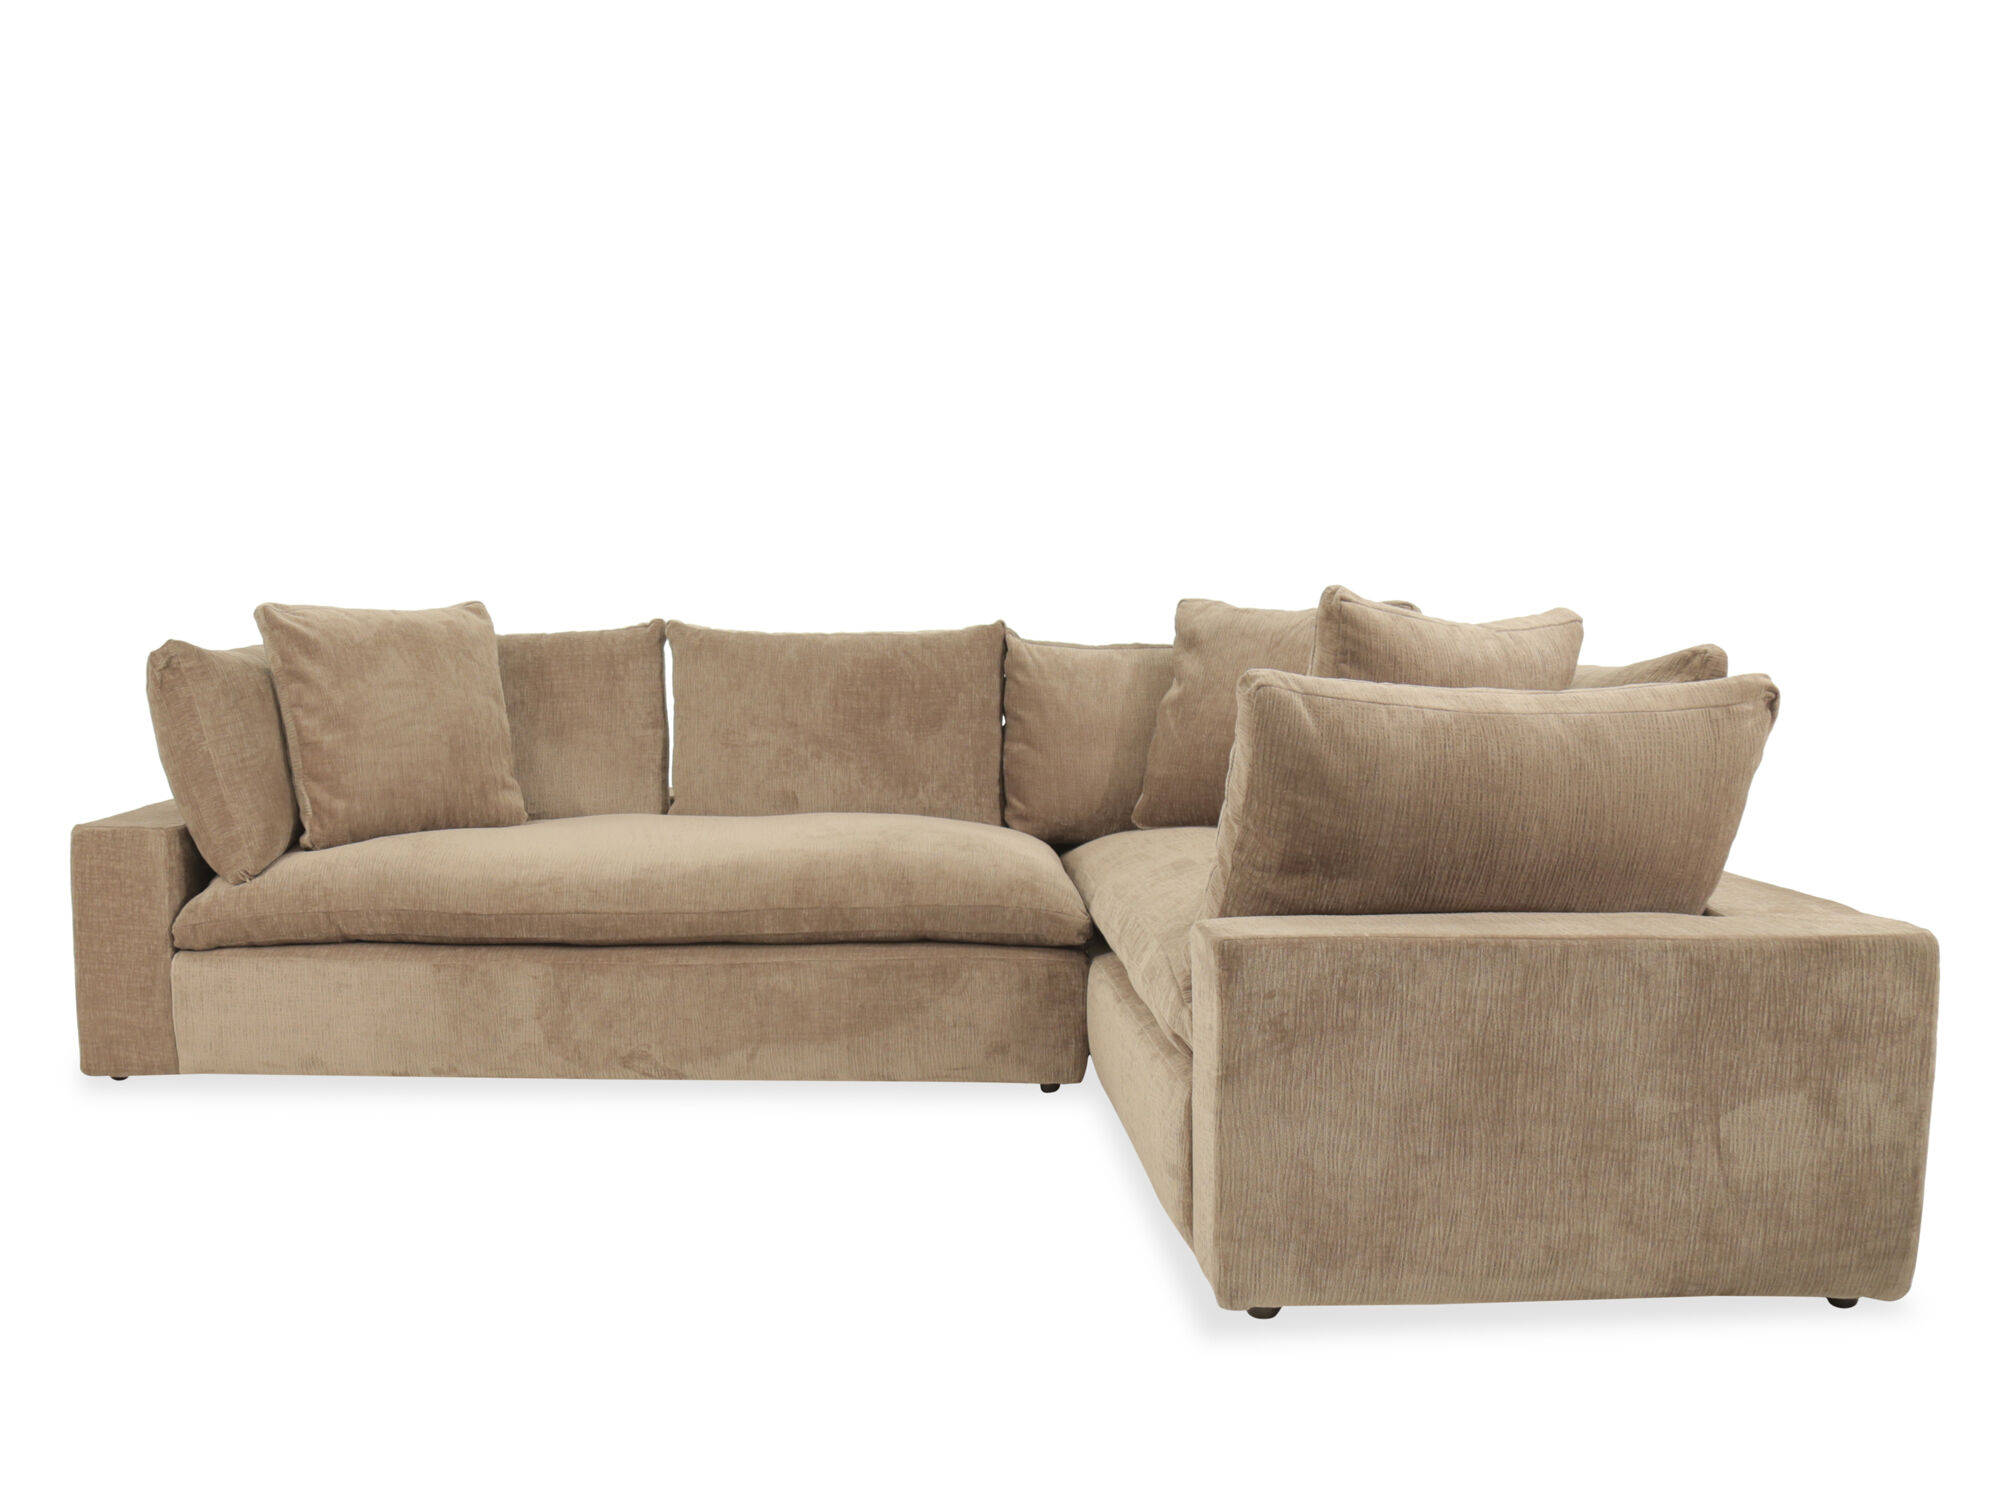 michael nicholas aspen sofa distressed table with storage serenity two piece sectional mathis